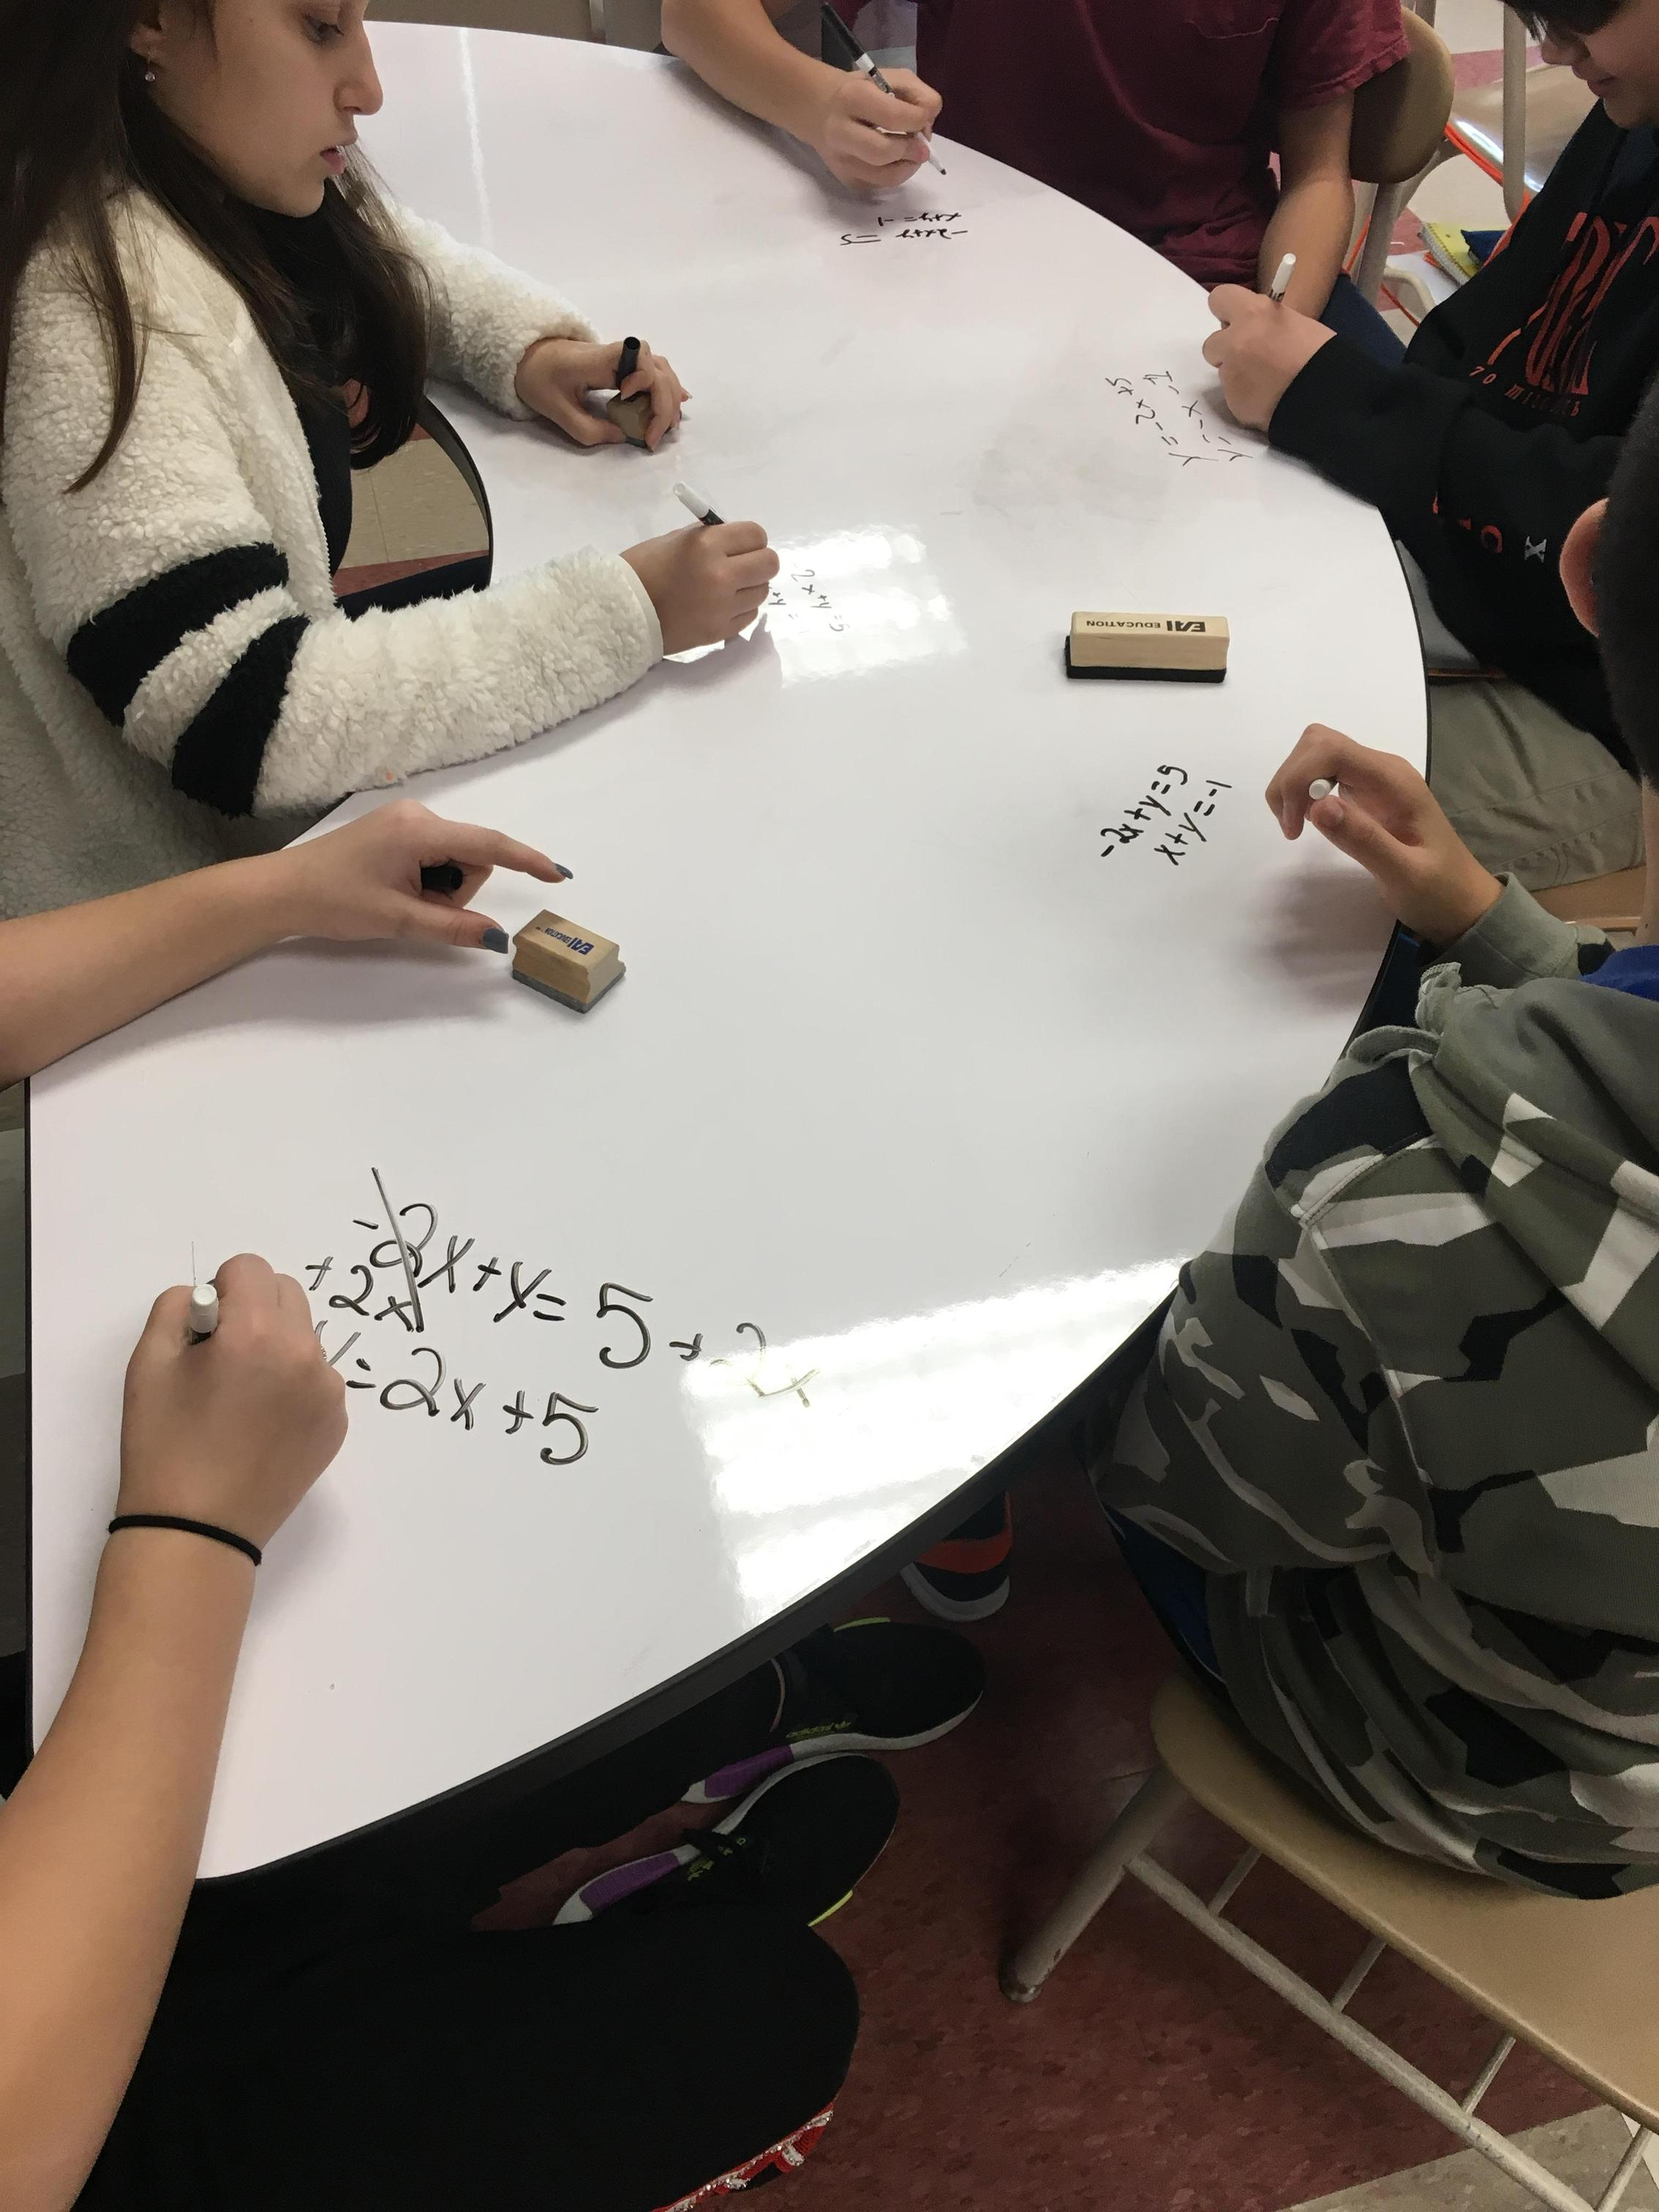 Students working on dry erase table